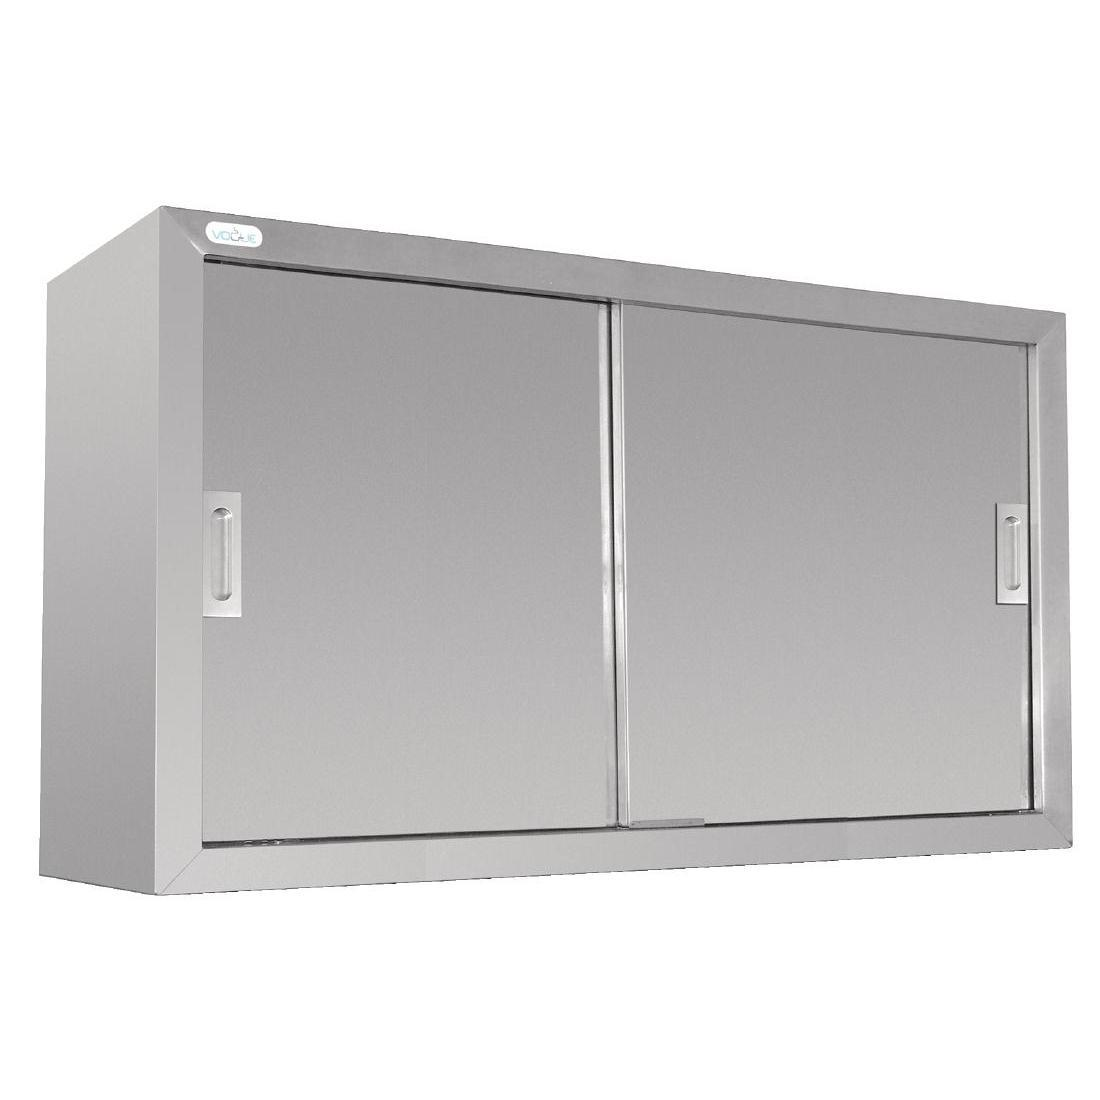 Vogue Stainless Steel Wall Cupboard 1200mm - Each - DL450